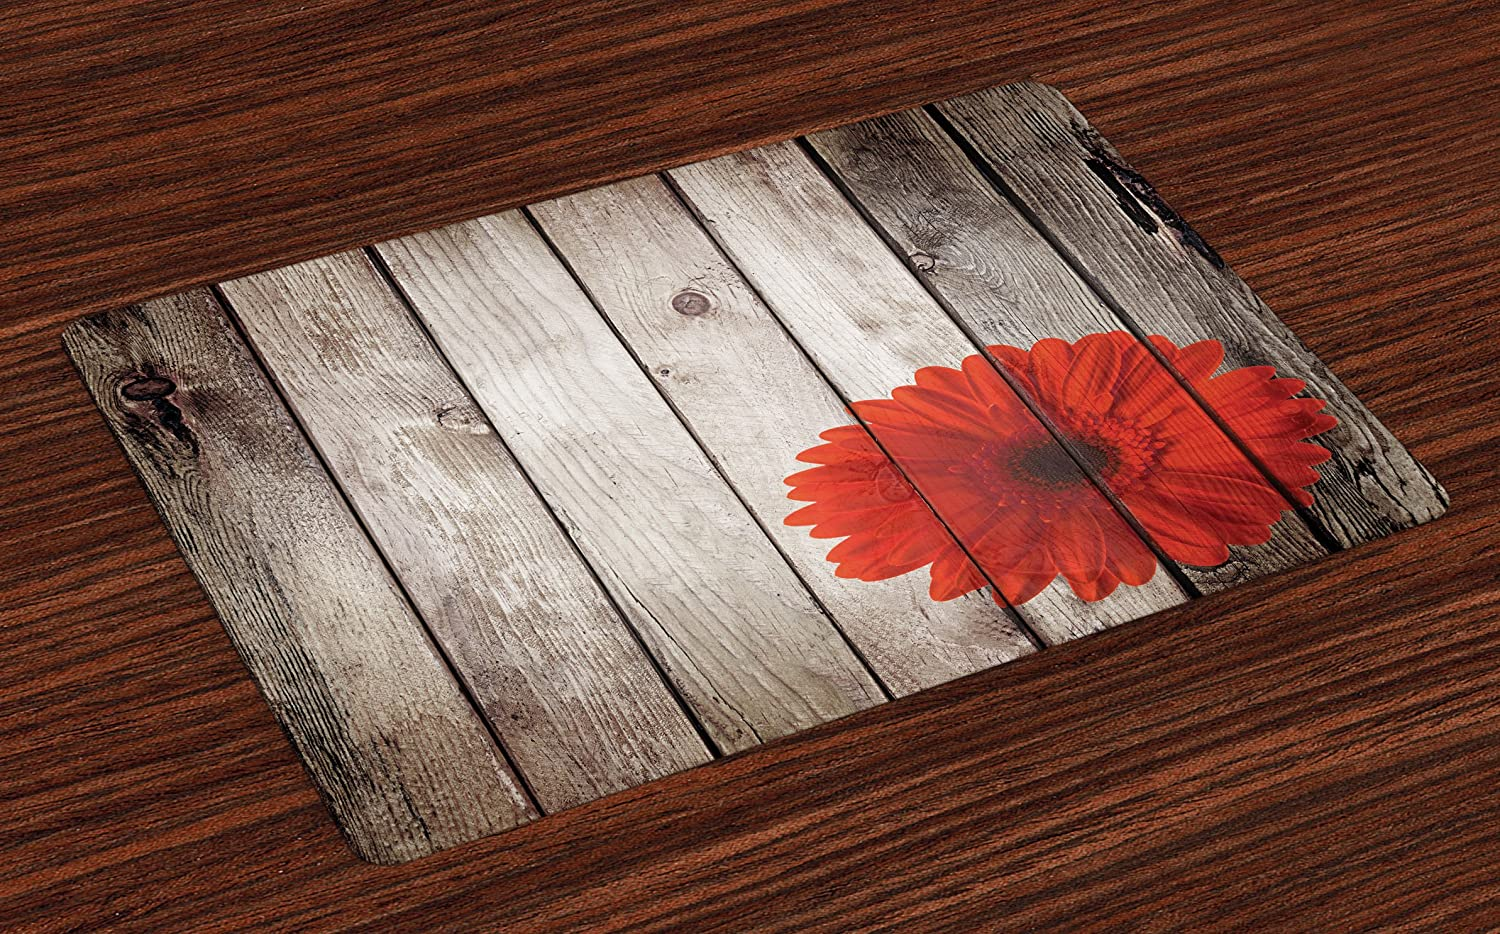 Lunarable Rustic Place Mats Set of 4, Flower Red Dahlia on Foreground of Murky Featured Dated Wooden Board Retro Art Print, Washable Fabric Placemats for Dining Room Kitchen Table Decoration, Brown